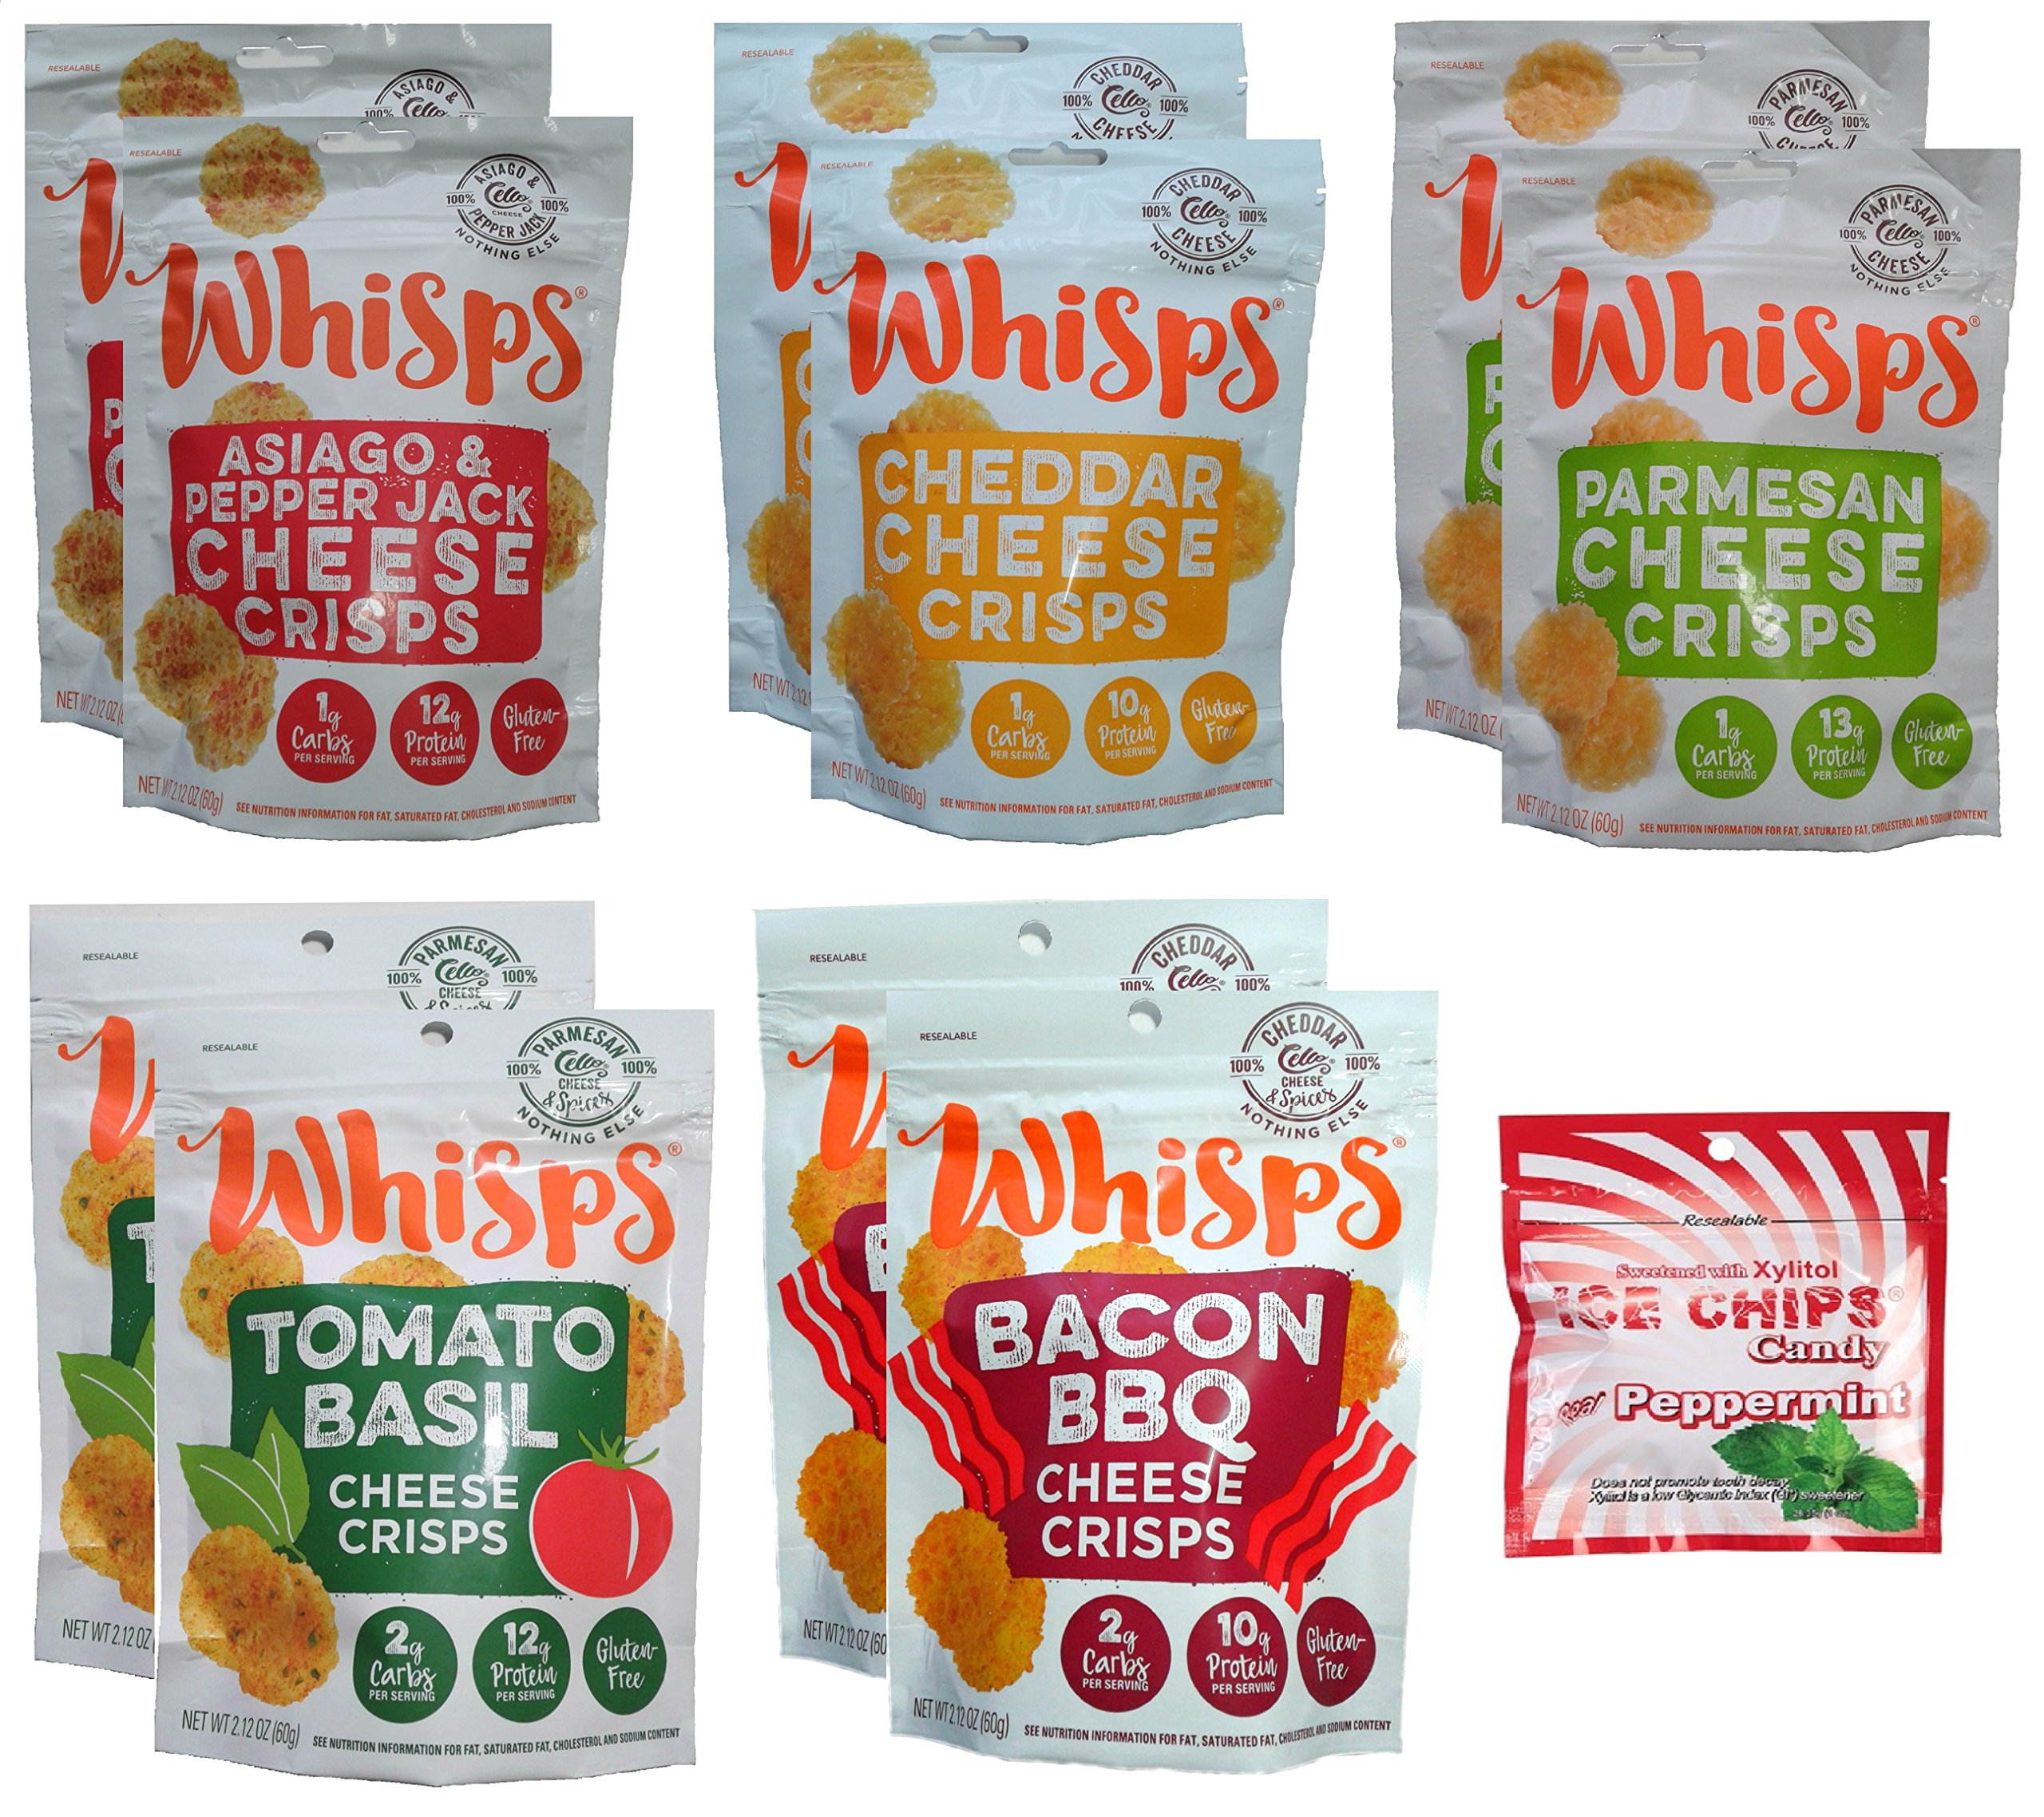 10-Pack Whisps Cheese Crisps 5 Flavors (2.12oz) + Ice Chips Peppermint Bundle; Low Carb, 100% Cheese, Gluten Free by Cello